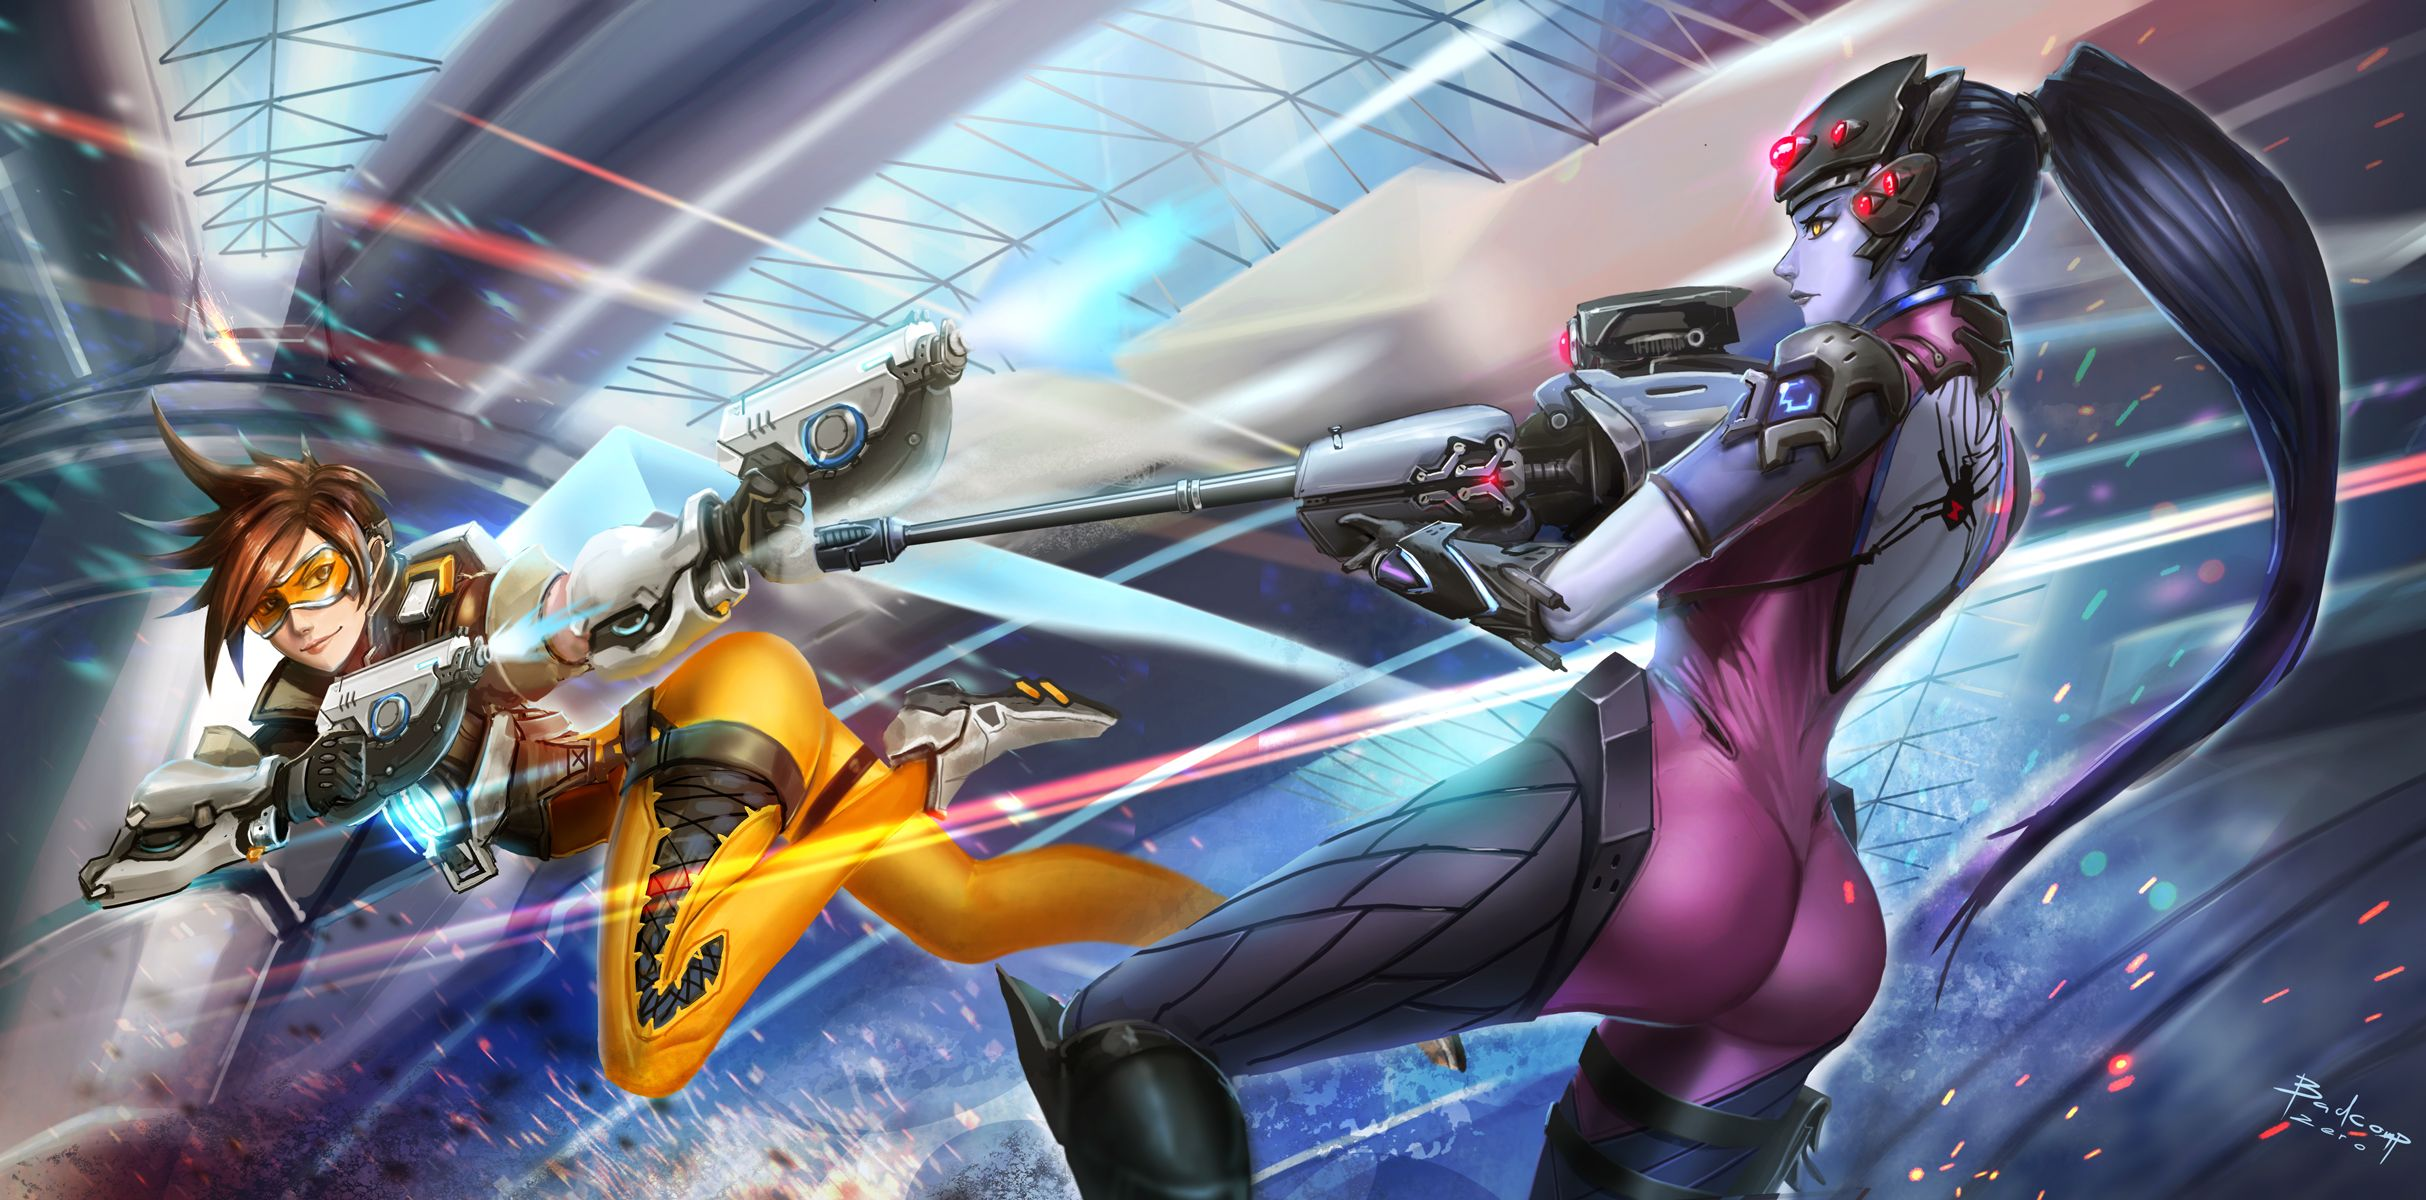 Pin By Mark On 오버워치 Overwatch Overwatch Tracer Overwatch Wallpapers Overwatch